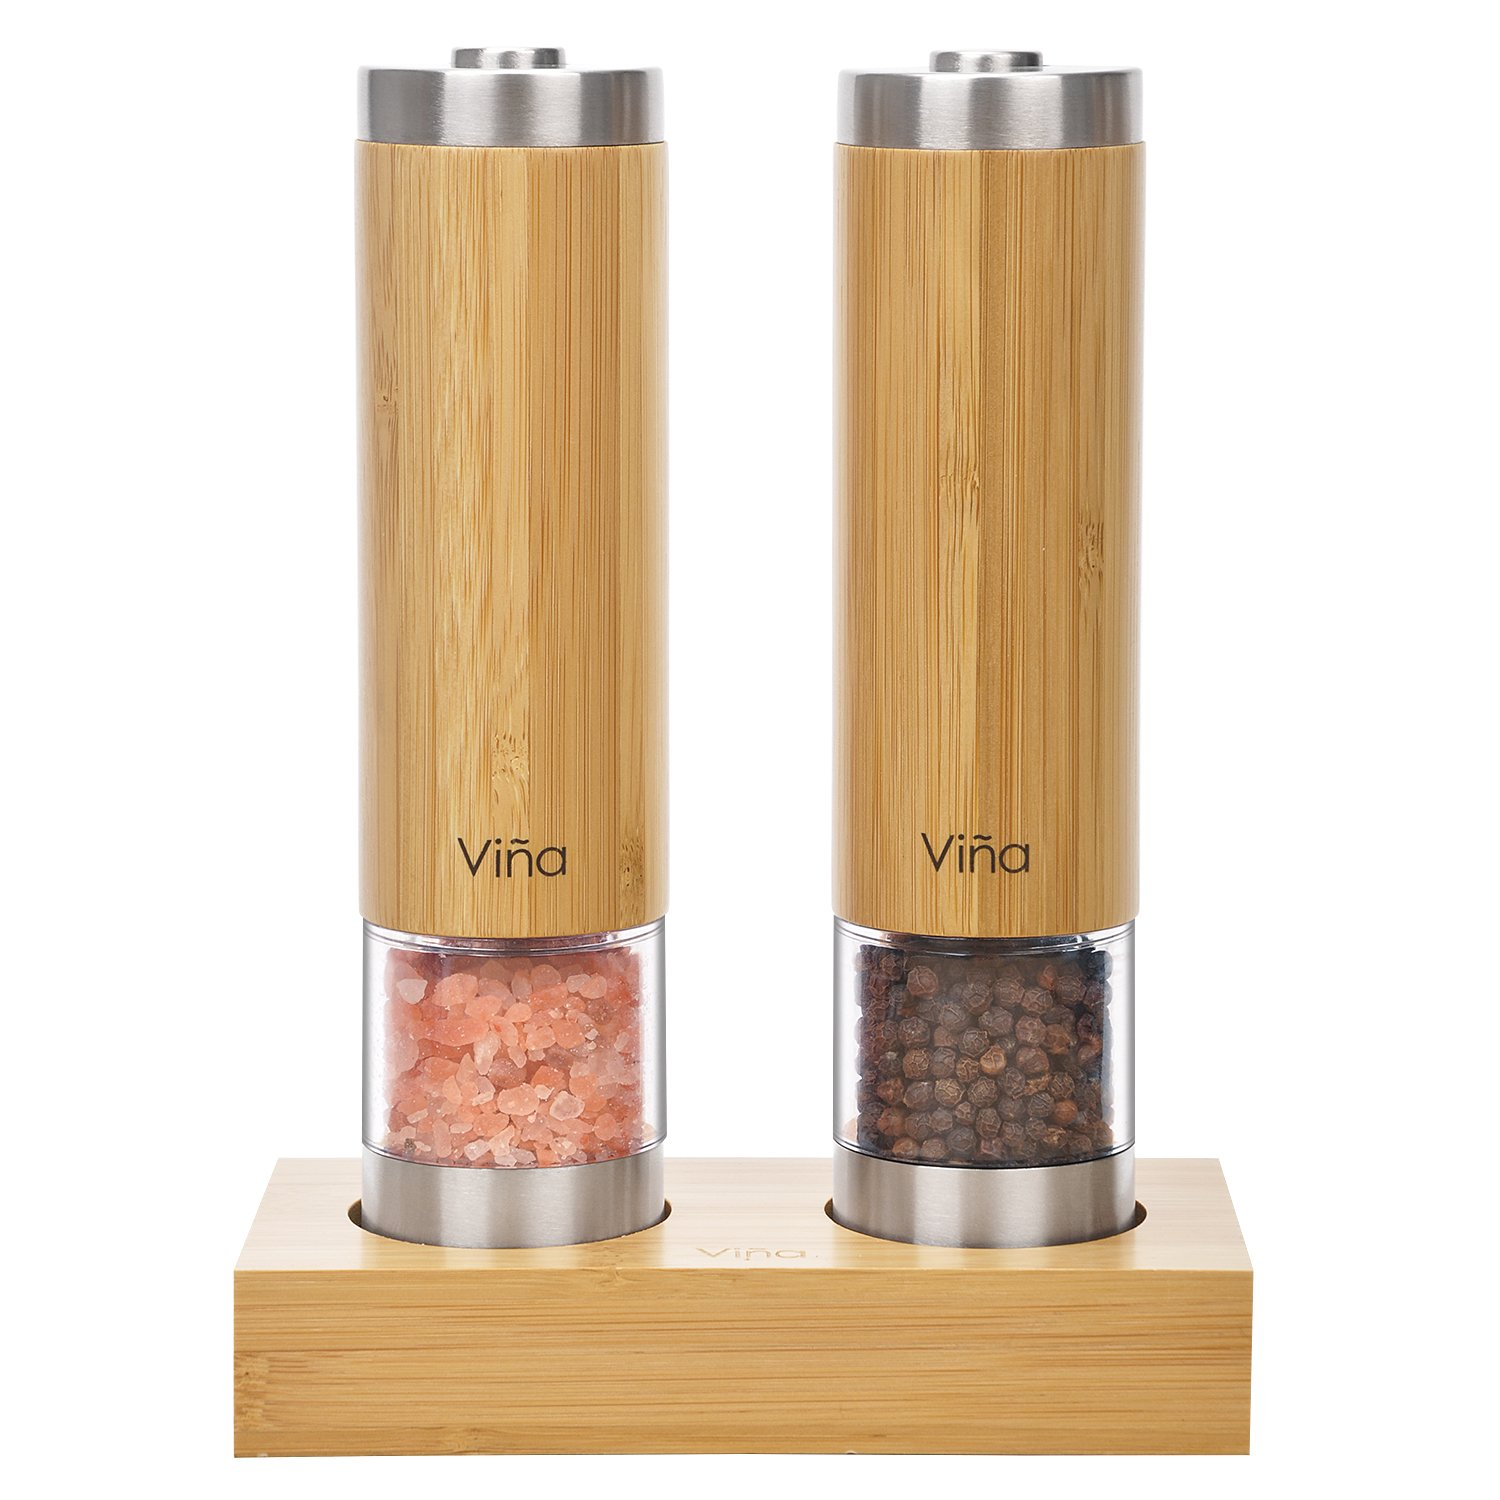 Vina Electric Automatic Salt and Pepper Grinder Set, Battery Operated, LED Light and Adjustable Ceramic, Stainless Steel and Bamboo Body Pepper Mill with Stand, Pack of 2